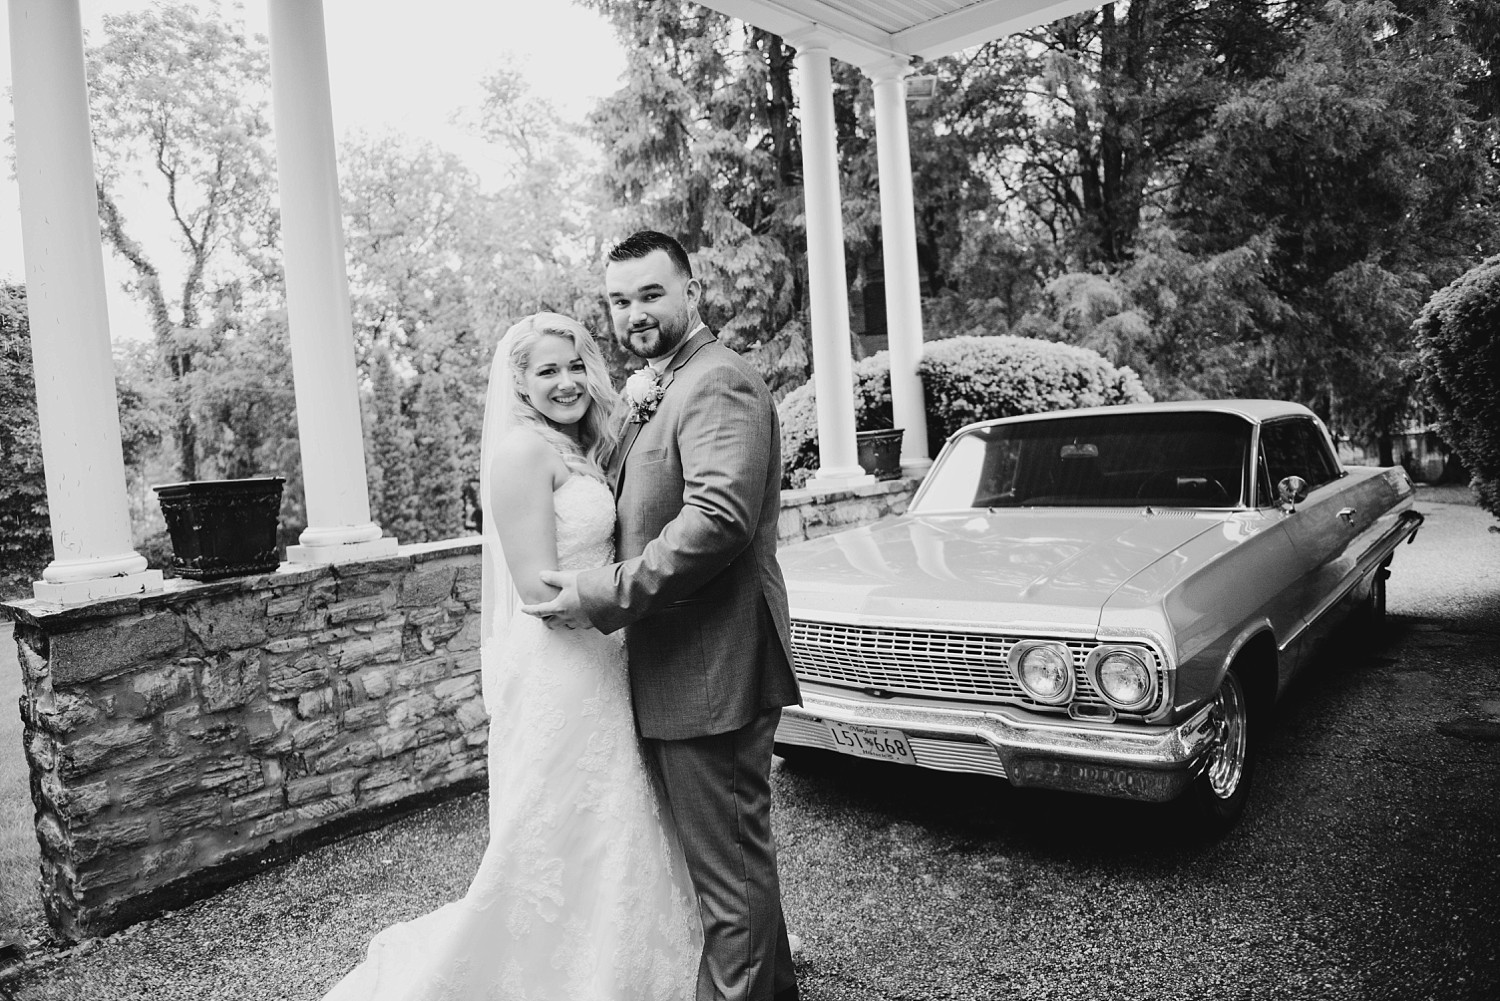 Jackson_Wedding_Bride&Groom_PortraitsDSC_5721_0027.jpg